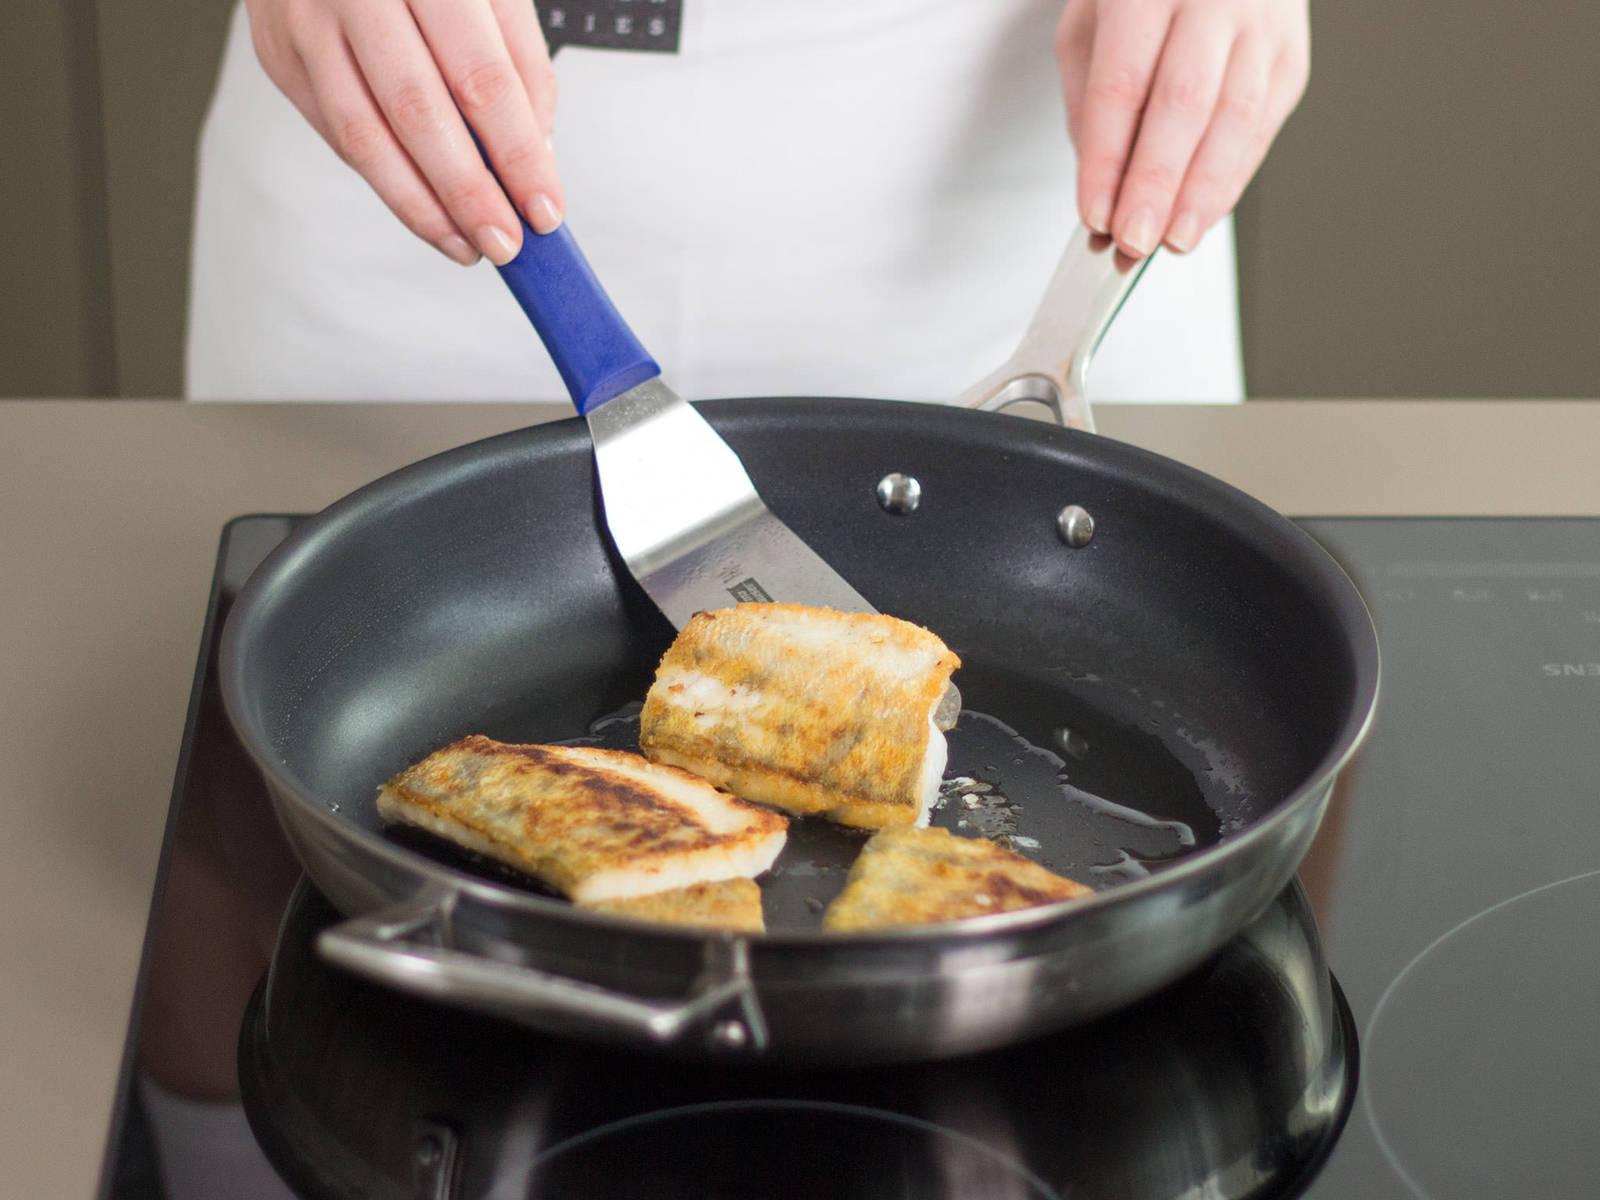 In a large frying pan, sauté perch in some vegetable oil over medium heat for approx. 1 – 3 min. per side. Season to taste with salt and pepper. Serve perch on a bed of sautéed cabbage and garnish with crispy cabbage leaves. Enjoy!